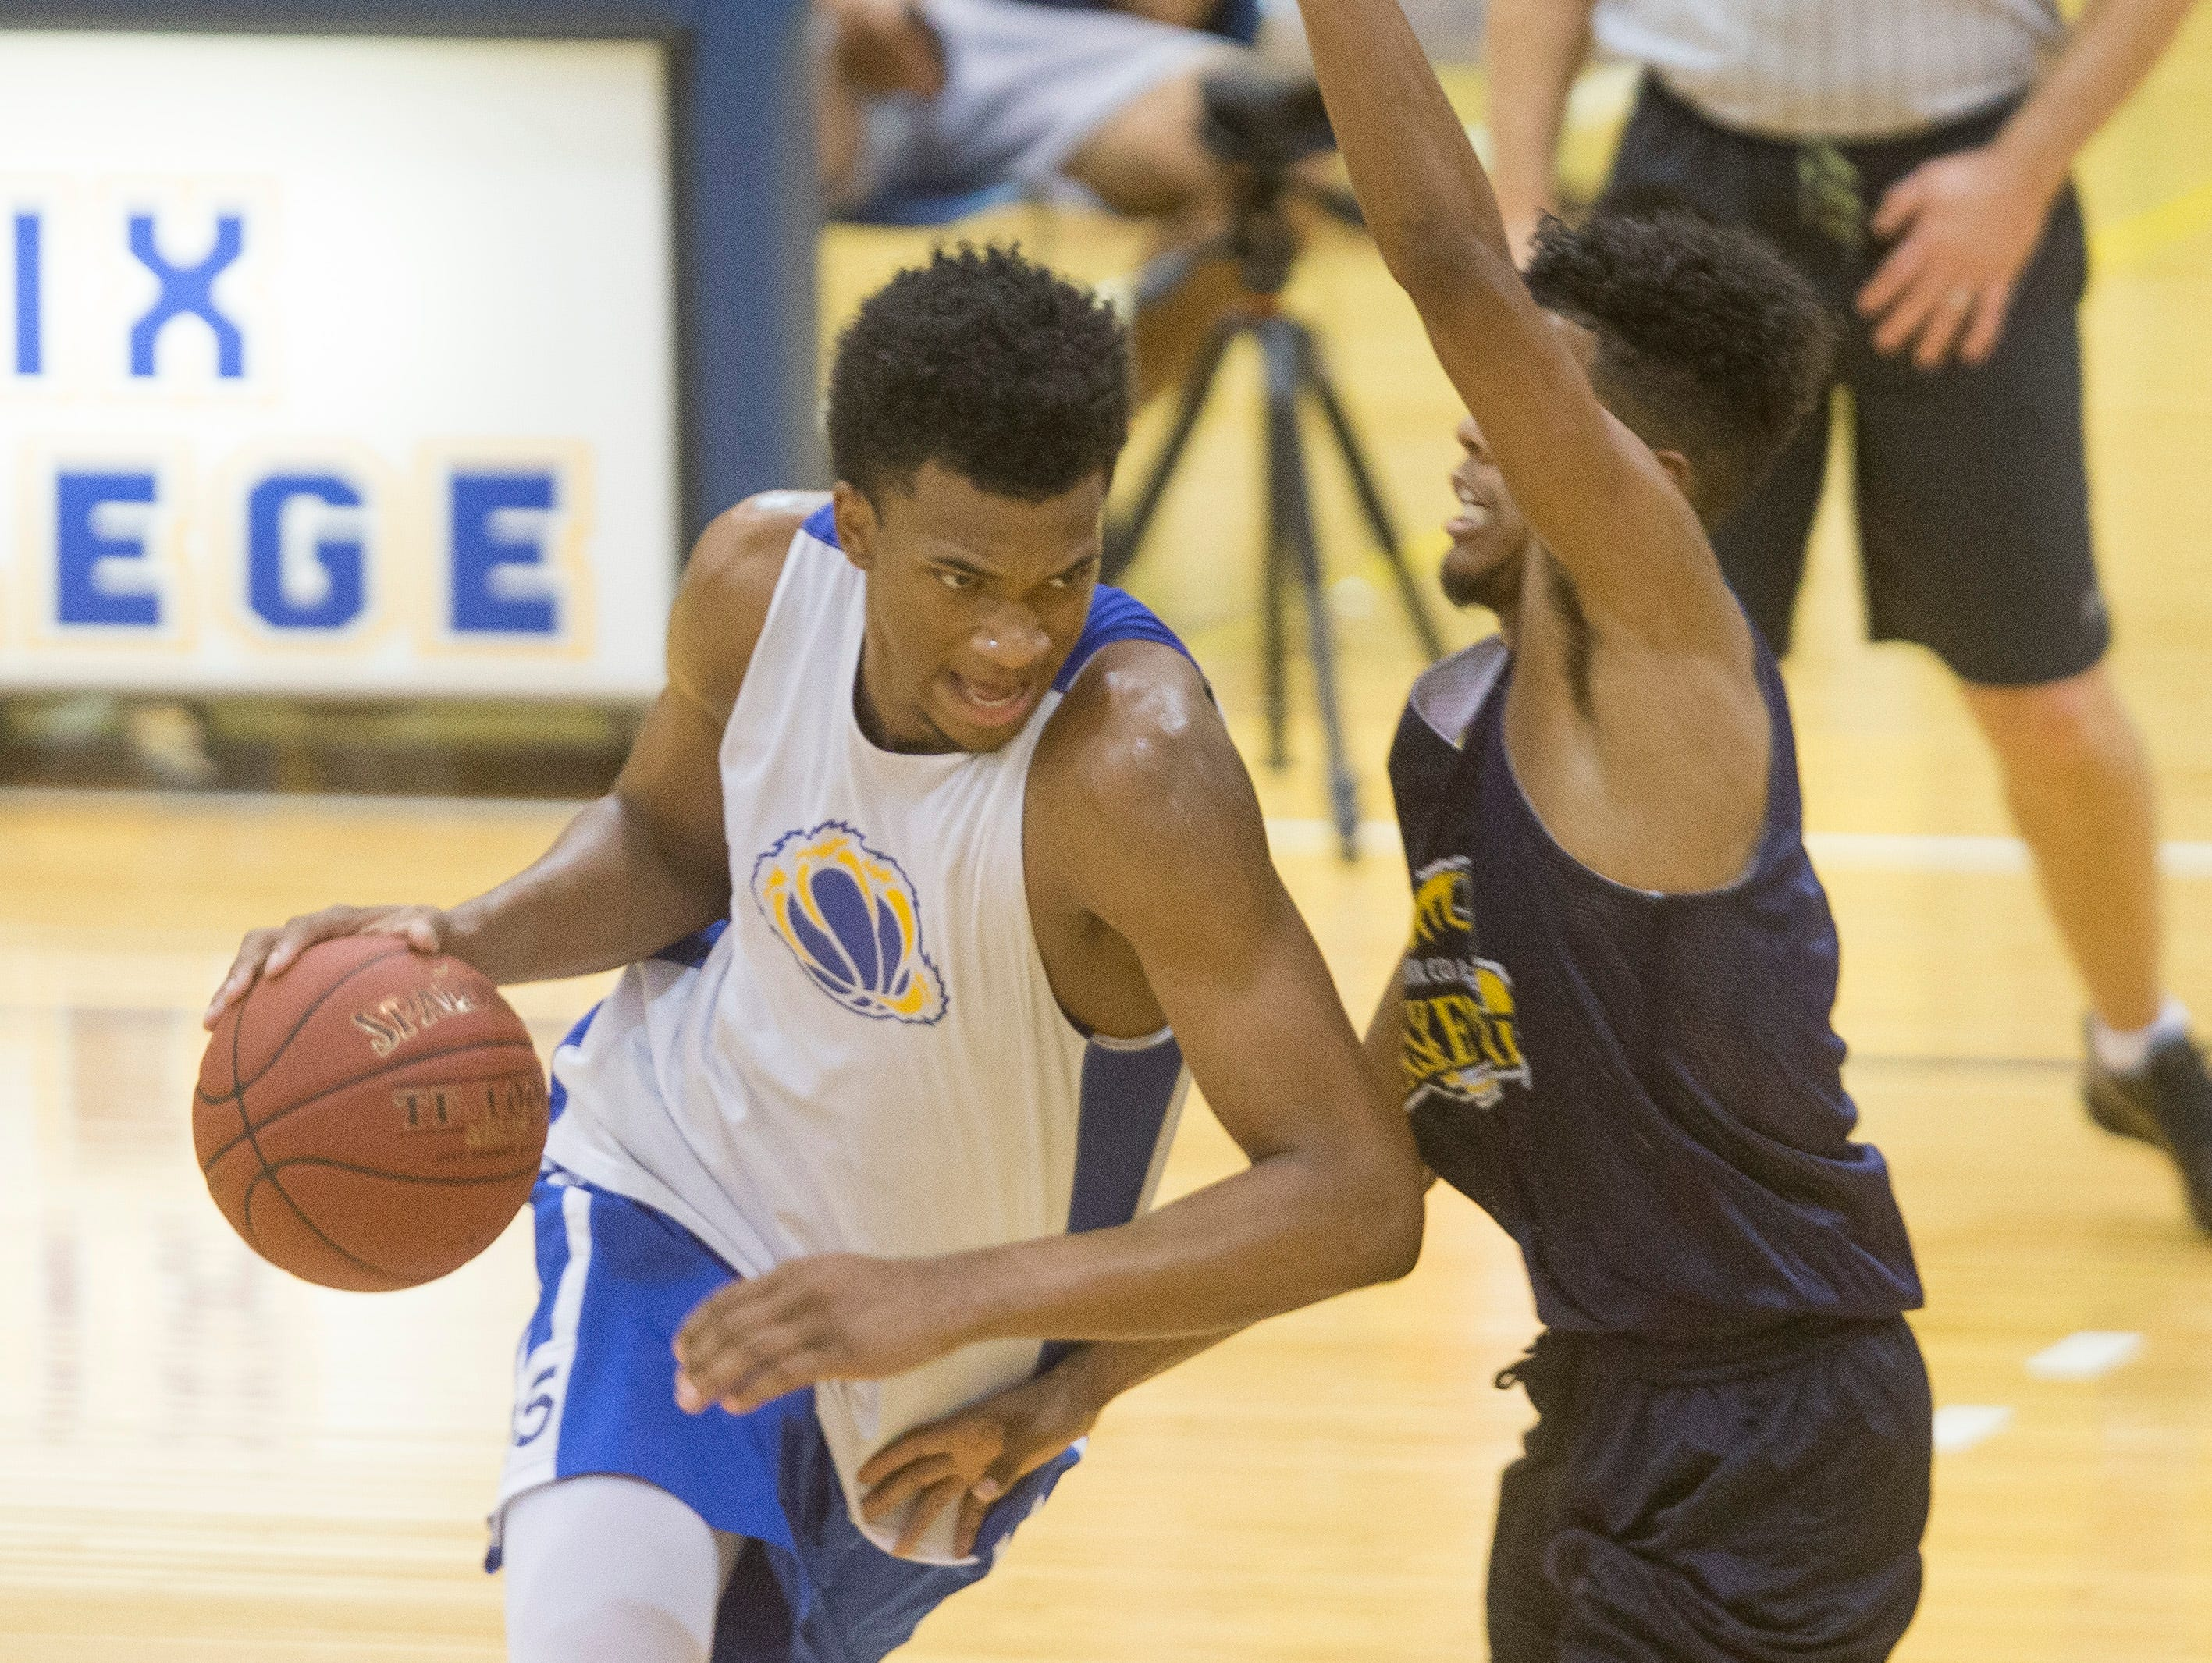 Hillcrest Prep's Marvin Bagley III drives into the lane during an exhibition game against Phoenix Community College at Phoenix Community College in Phoenix, AZ on October 8, 2015.